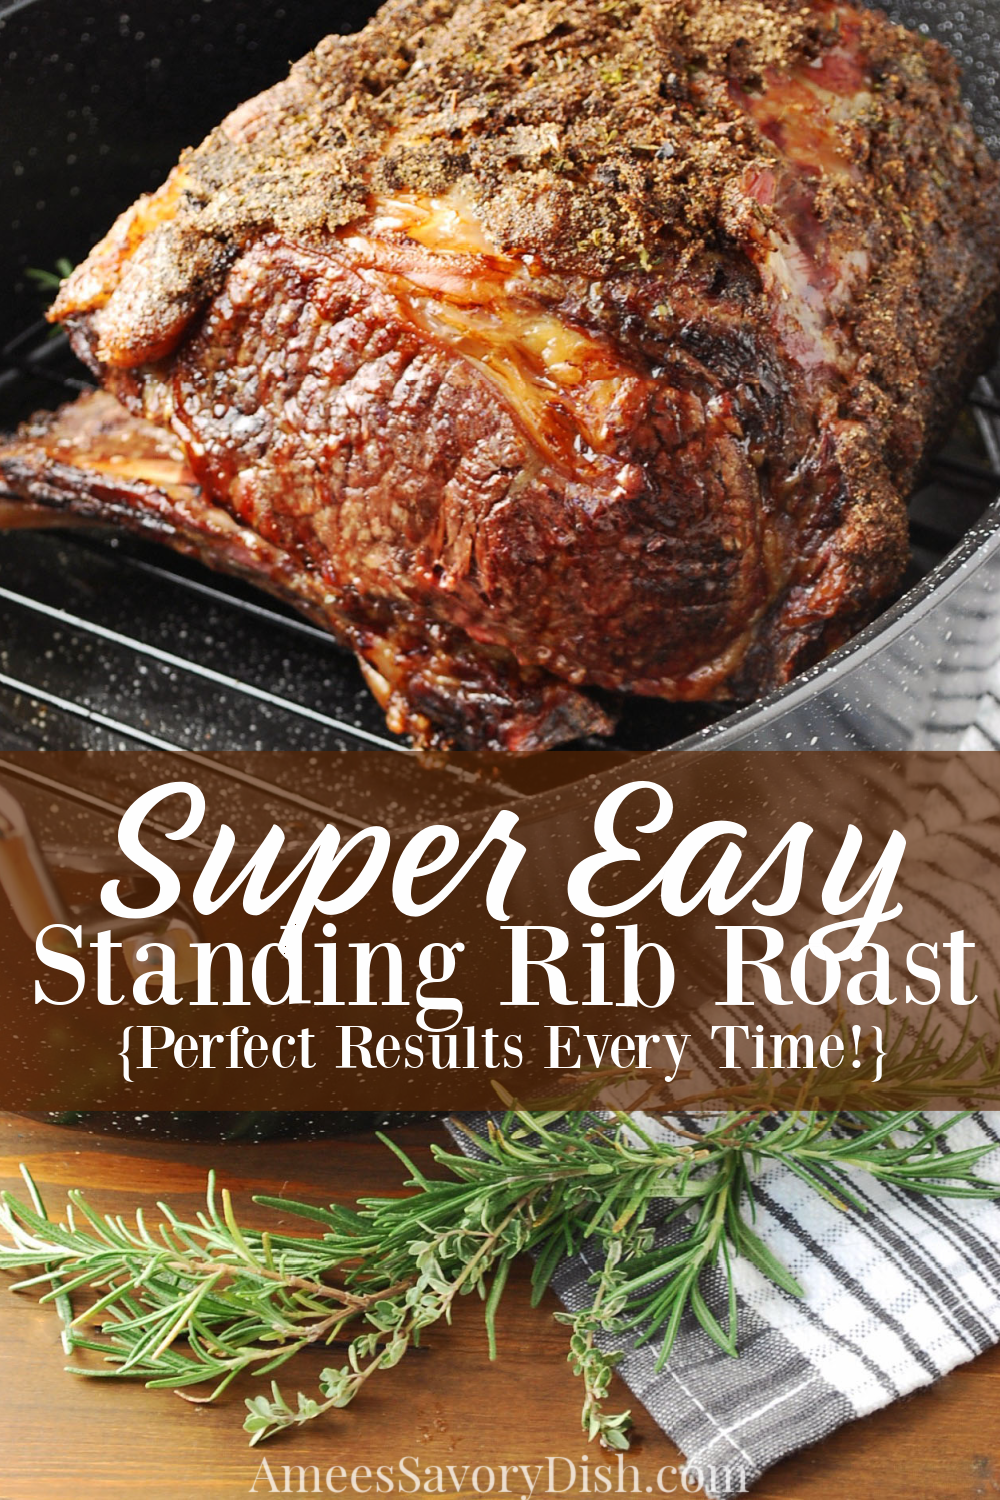 #Sponsored As impressive as it is, this Standing Rib Roast recipe is incredibly easy to make, and will be the star of your holiday meal! @beefitswhatsfordinner #beefitswhatsfordinner #NicelyDone #BeefFarmersandRanchers #beefuptheholidays #beefrecipe #standingribroast #primerib via @Ameessavorydish